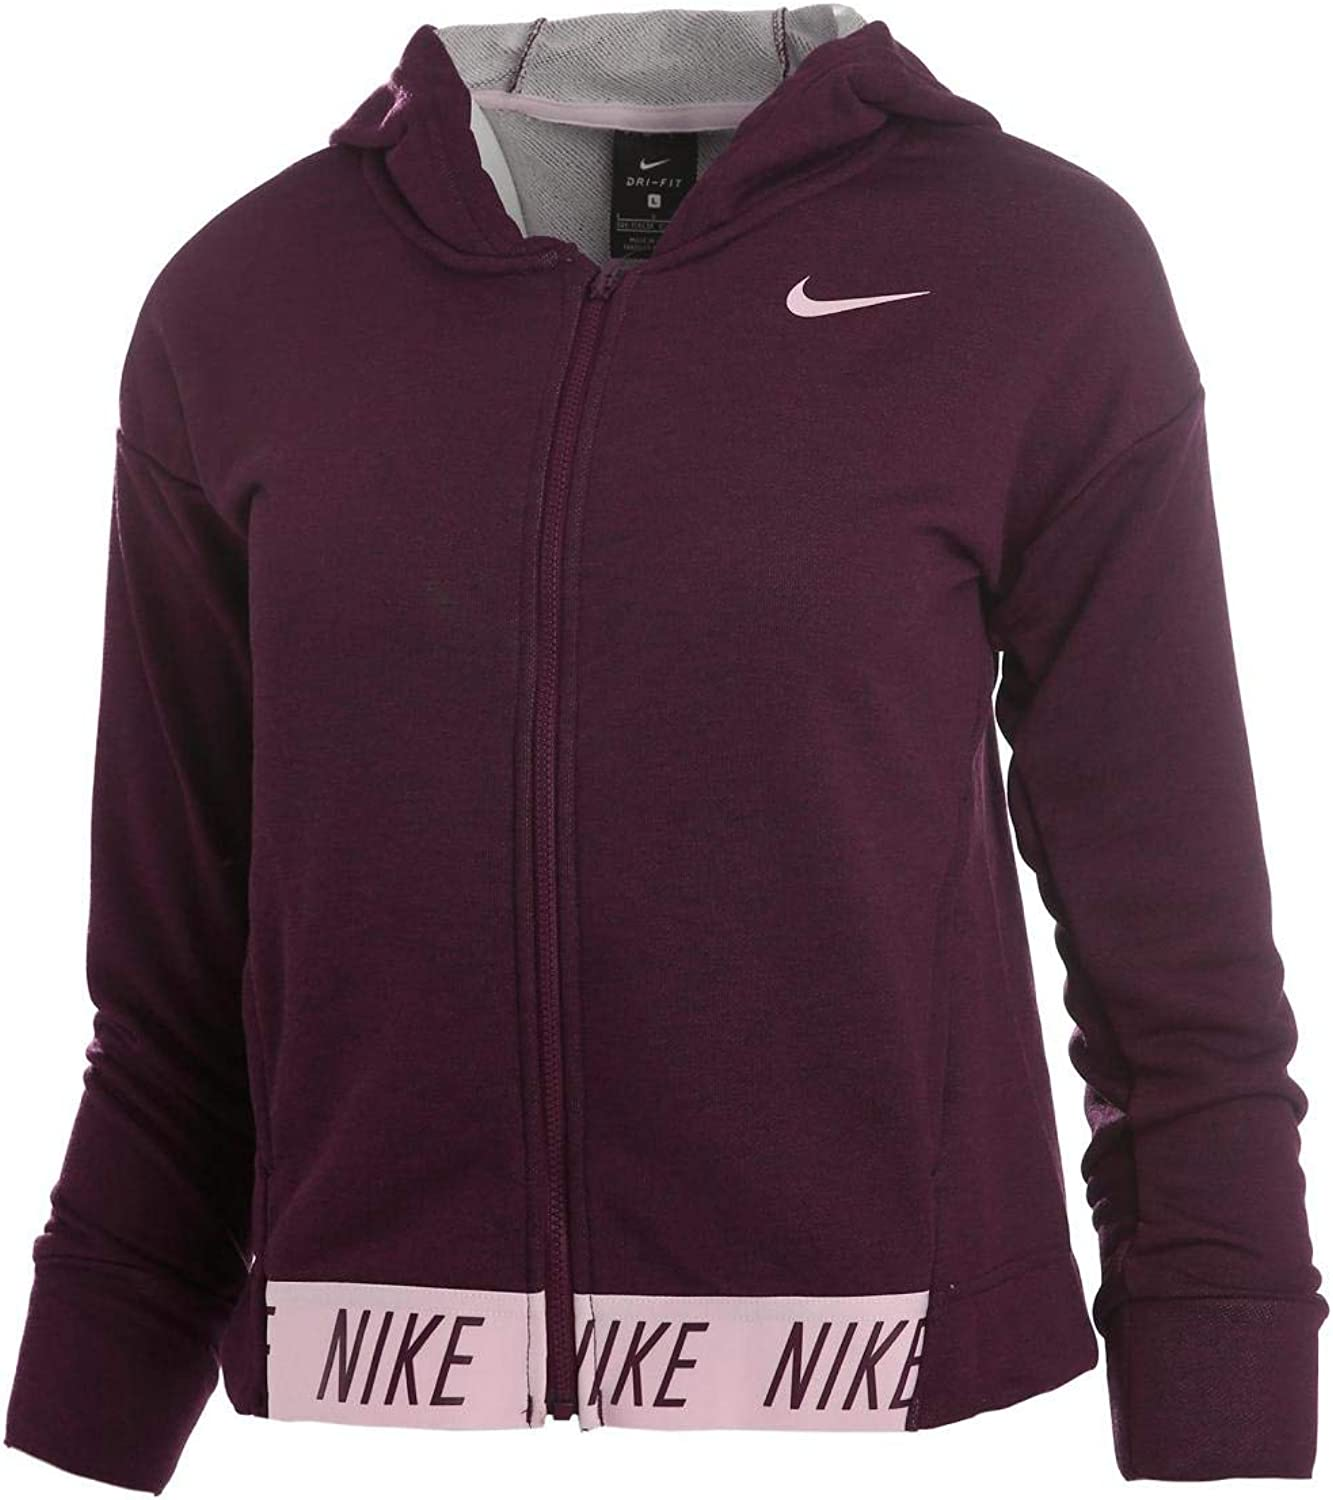 Nike Girls Swoosh Thermal Hoodie Pullover Lilac Purple Size Youth Medium